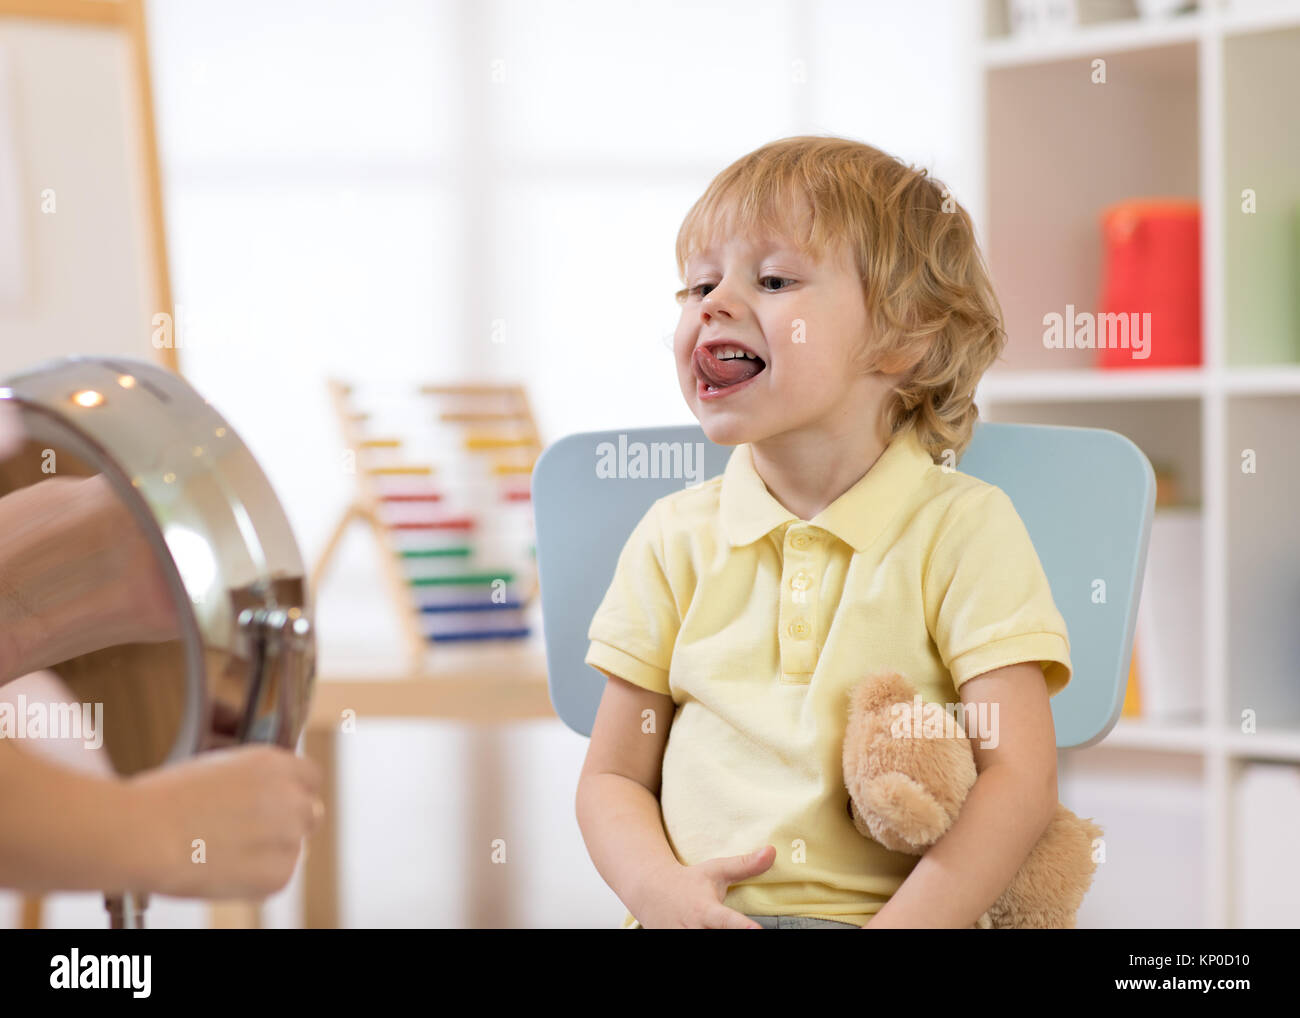 speech therapy exercises - Stock Image